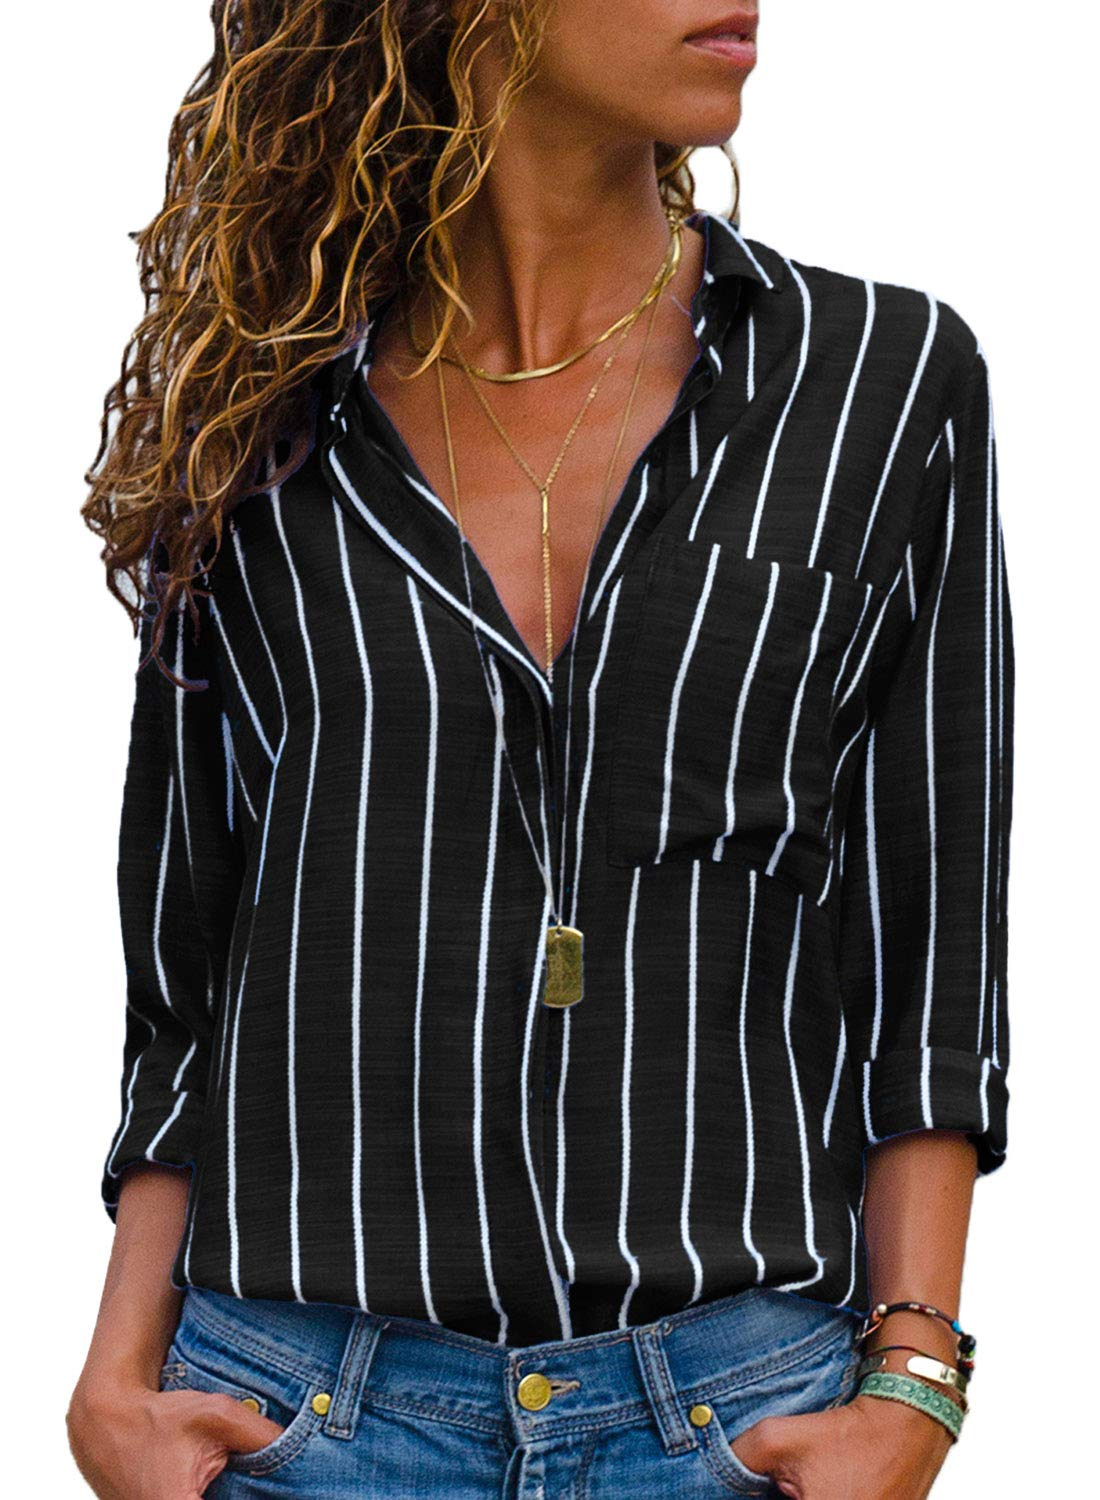 HOTAPEI Womens Plus Size Casual V Neck Striped Chiffon Work Tops and Blouses Long Sleeve Business Button up Shirts Black and White XXL by HOTAPEI